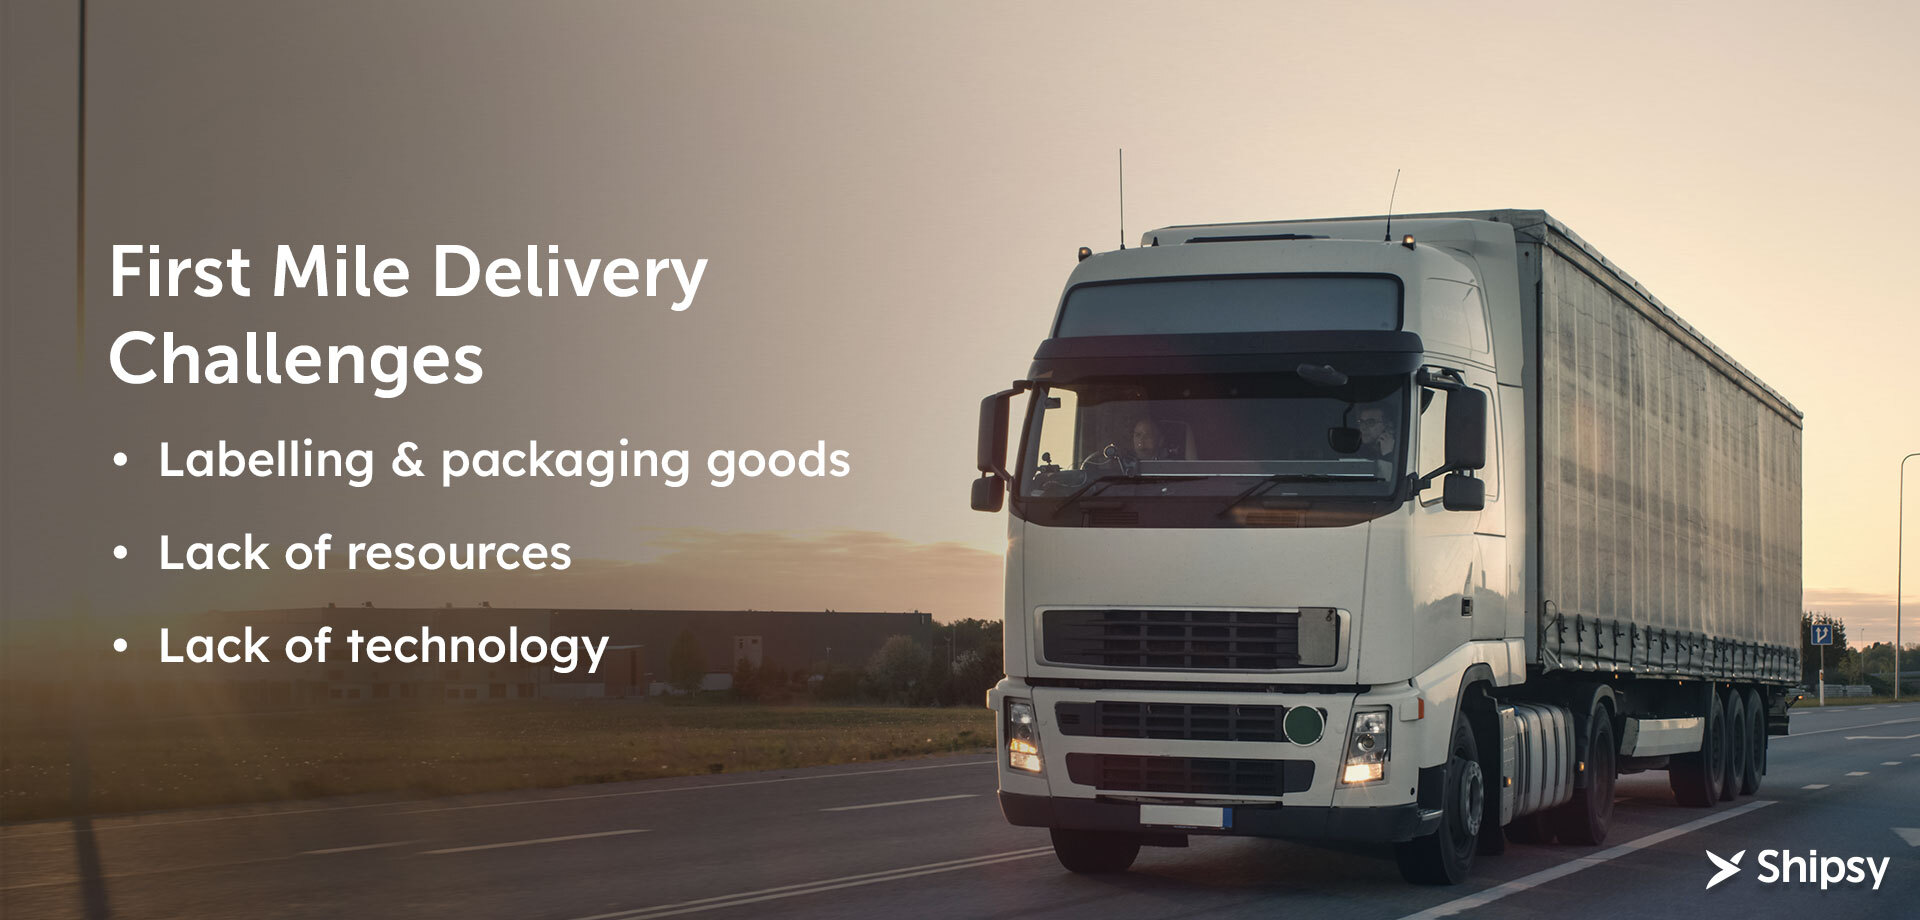 First mile delivery challenges